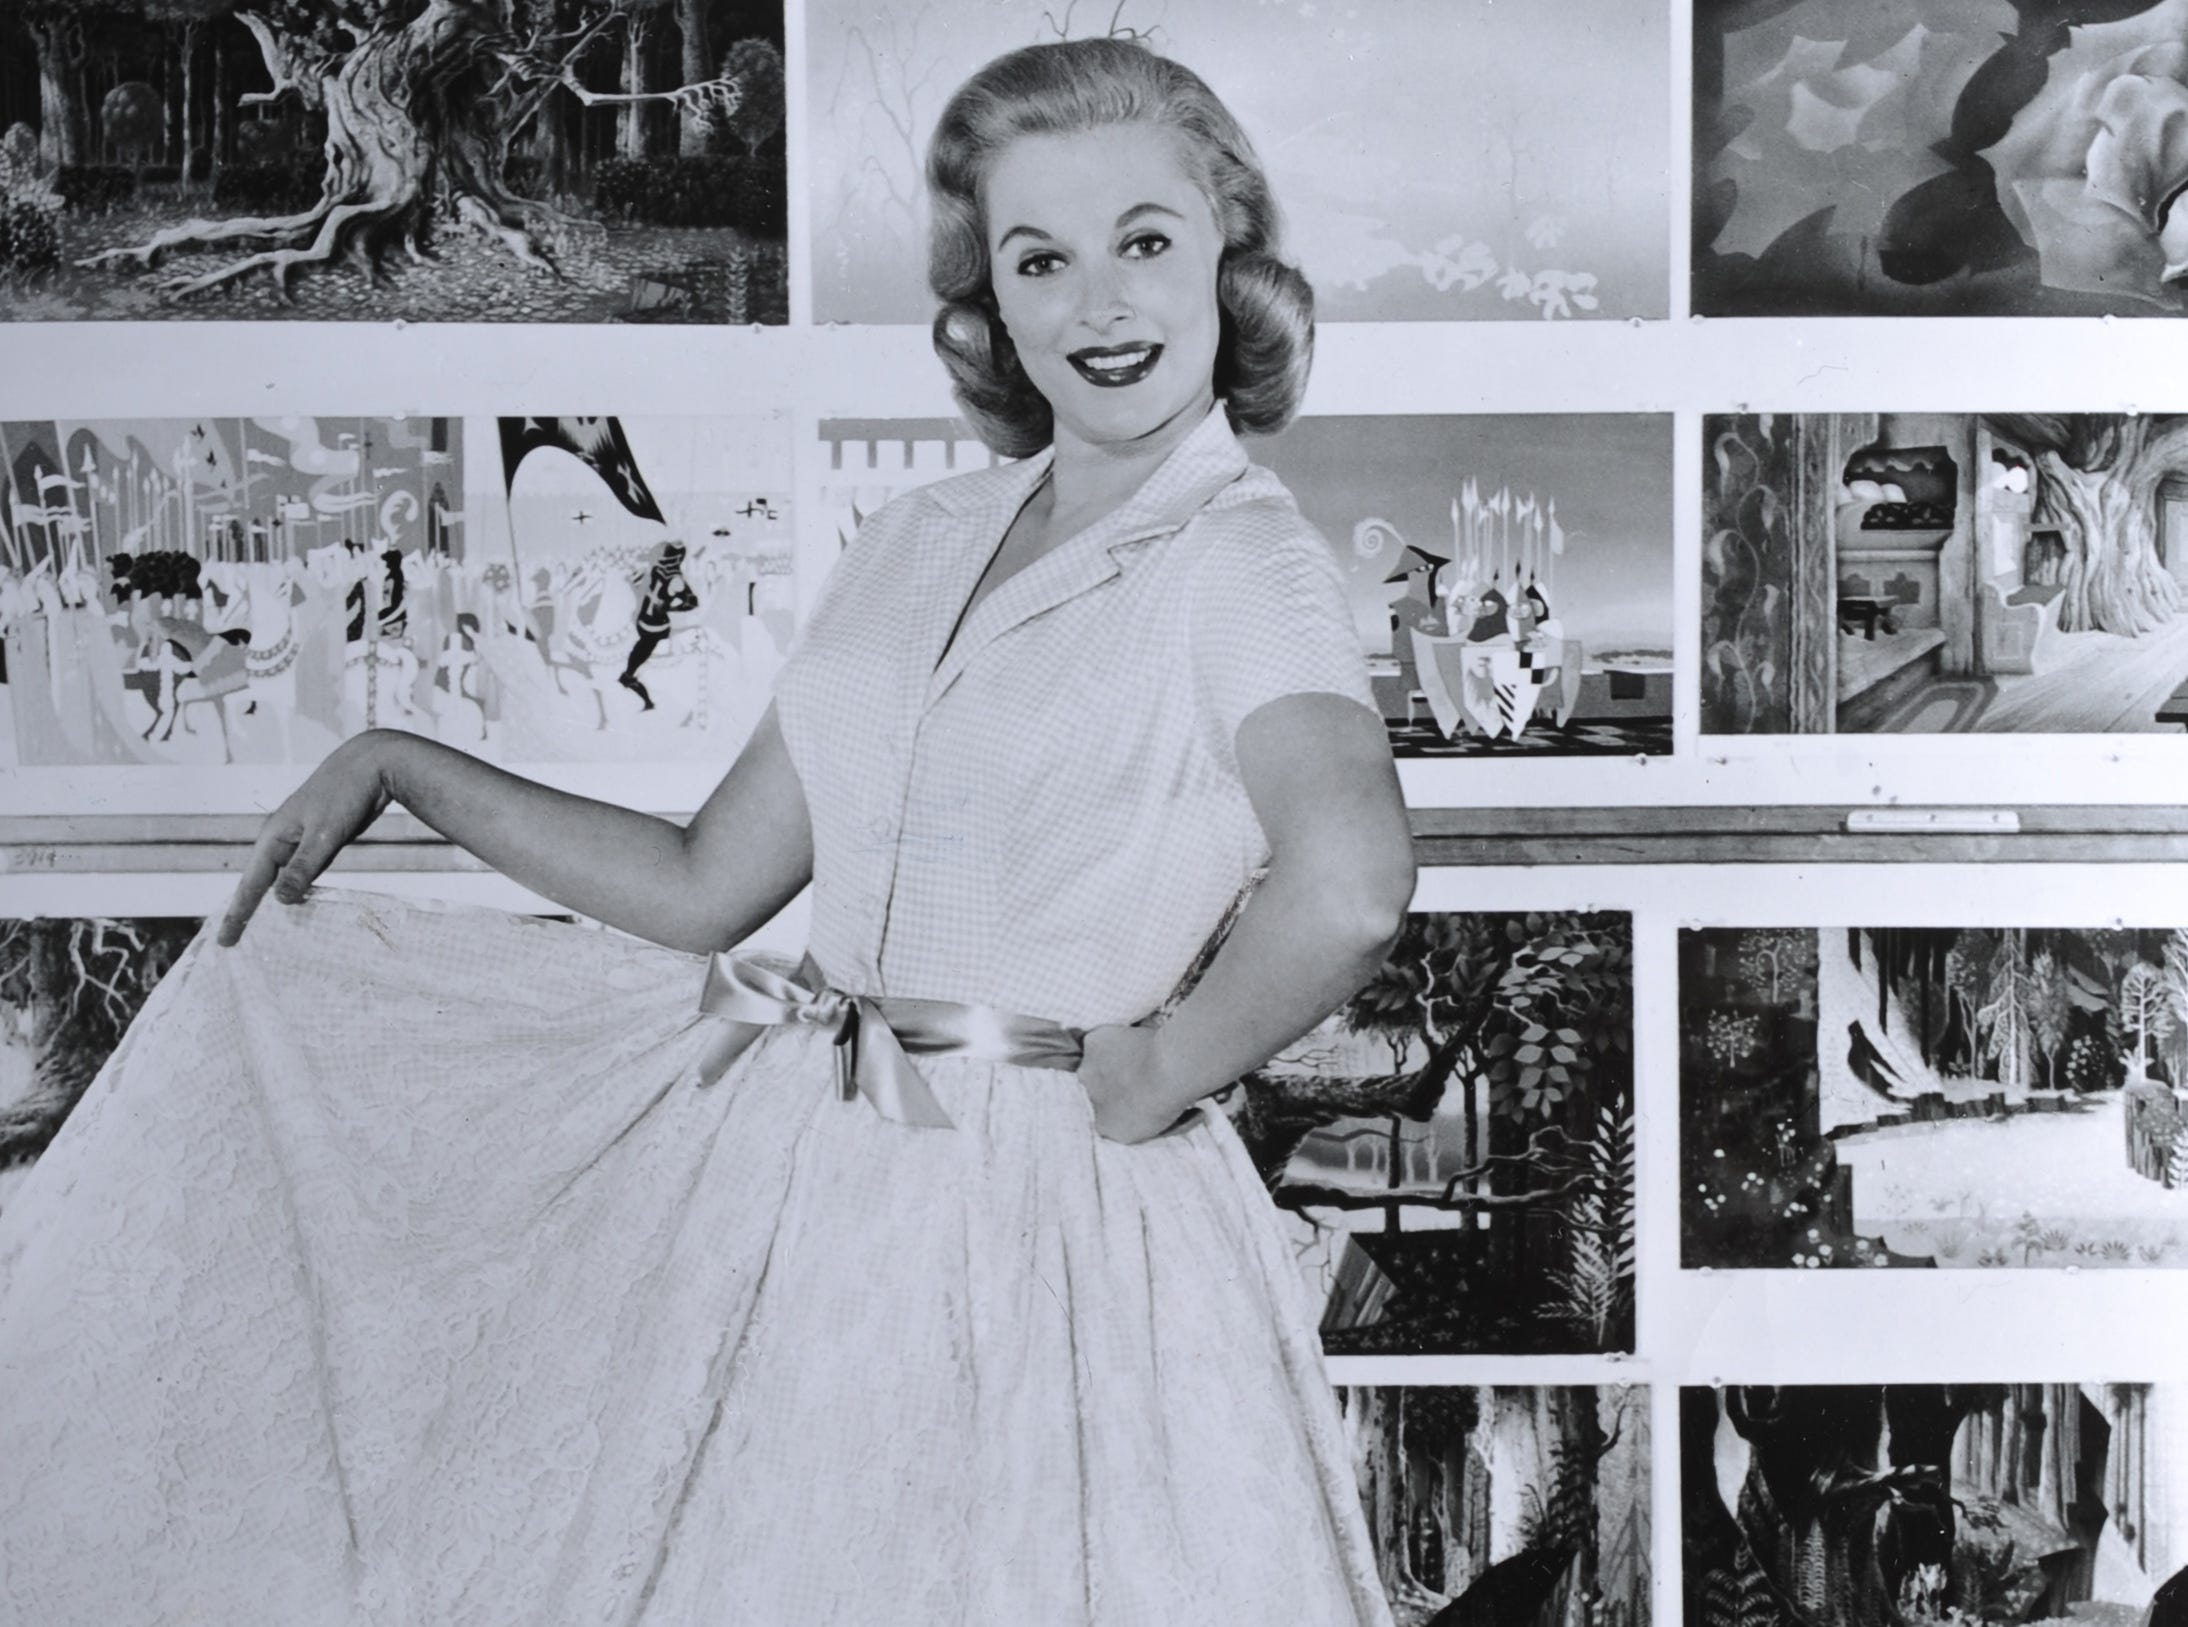 A publicity photograph shows Mary Costa promoting her role of Princess Aurora in the 1959 Walt Disney film 'Sleeping Beauty.'